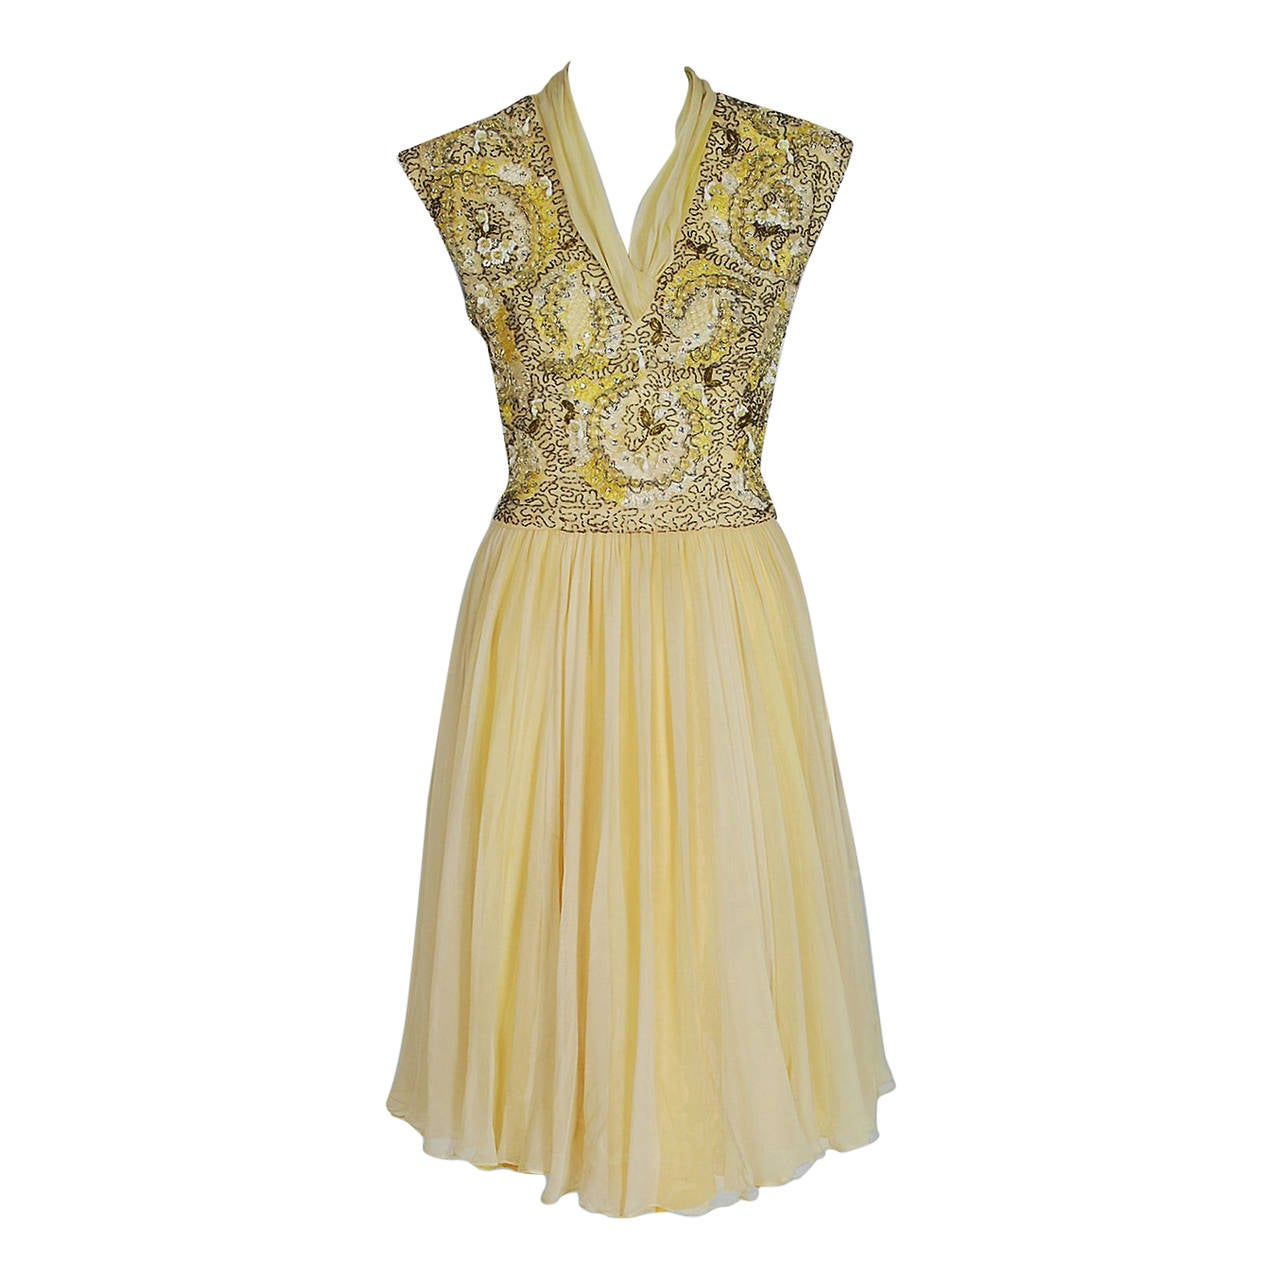 1950's Pat Sandler Pale-Yellow Beaded Embroidered Silk-Chiffon Party Dress For Sale